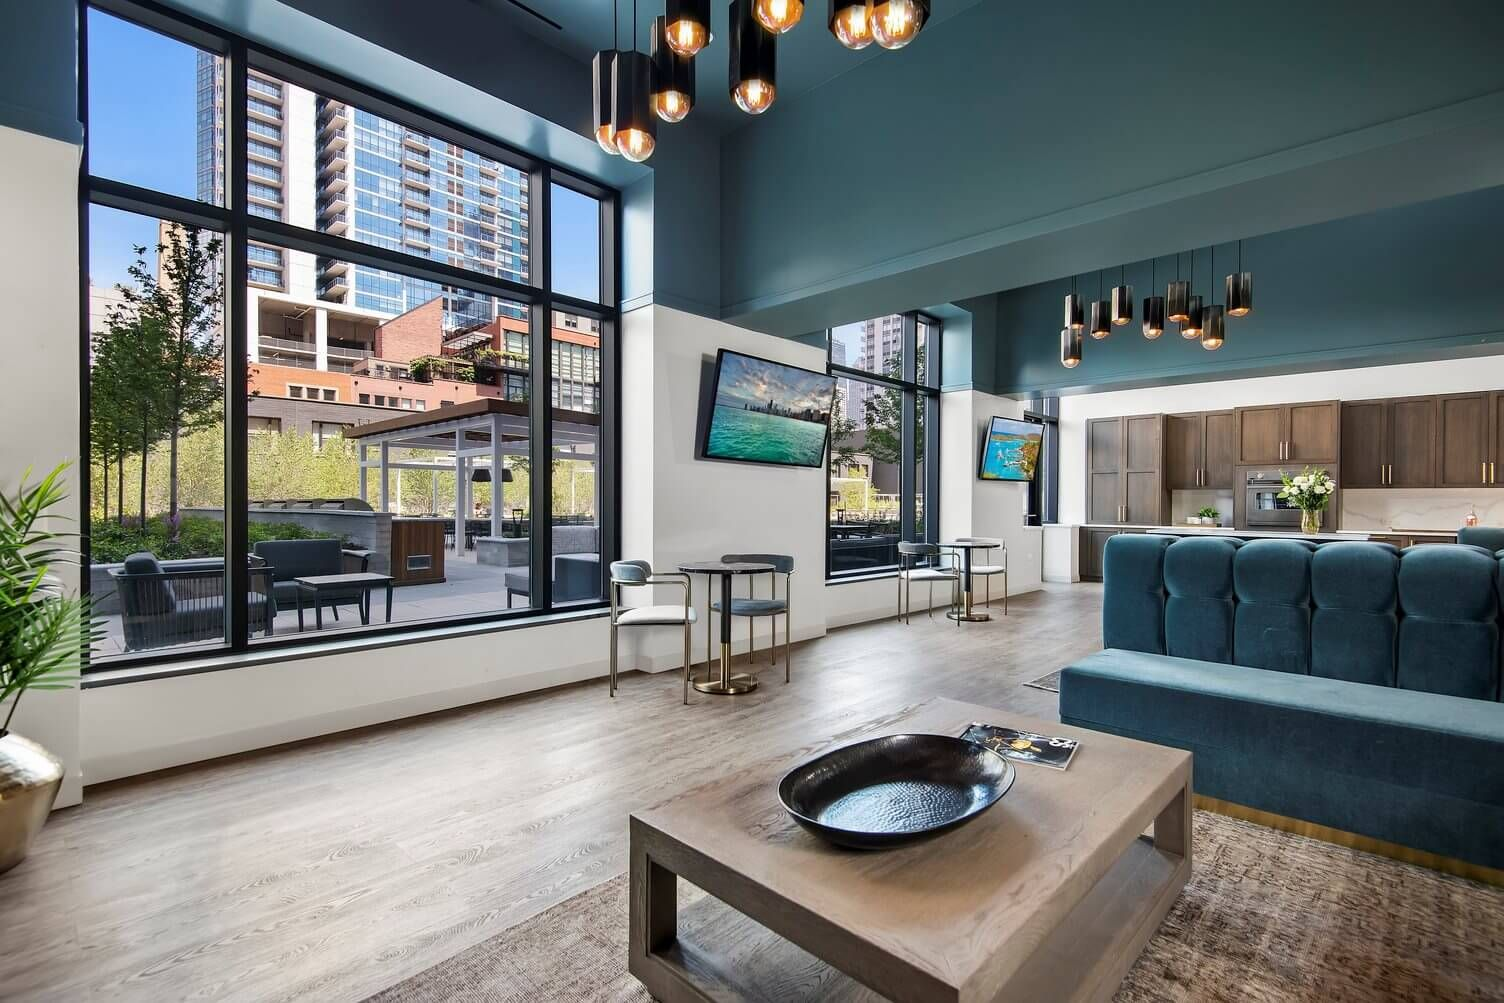 Best apartment search website in Chicago - River North Park